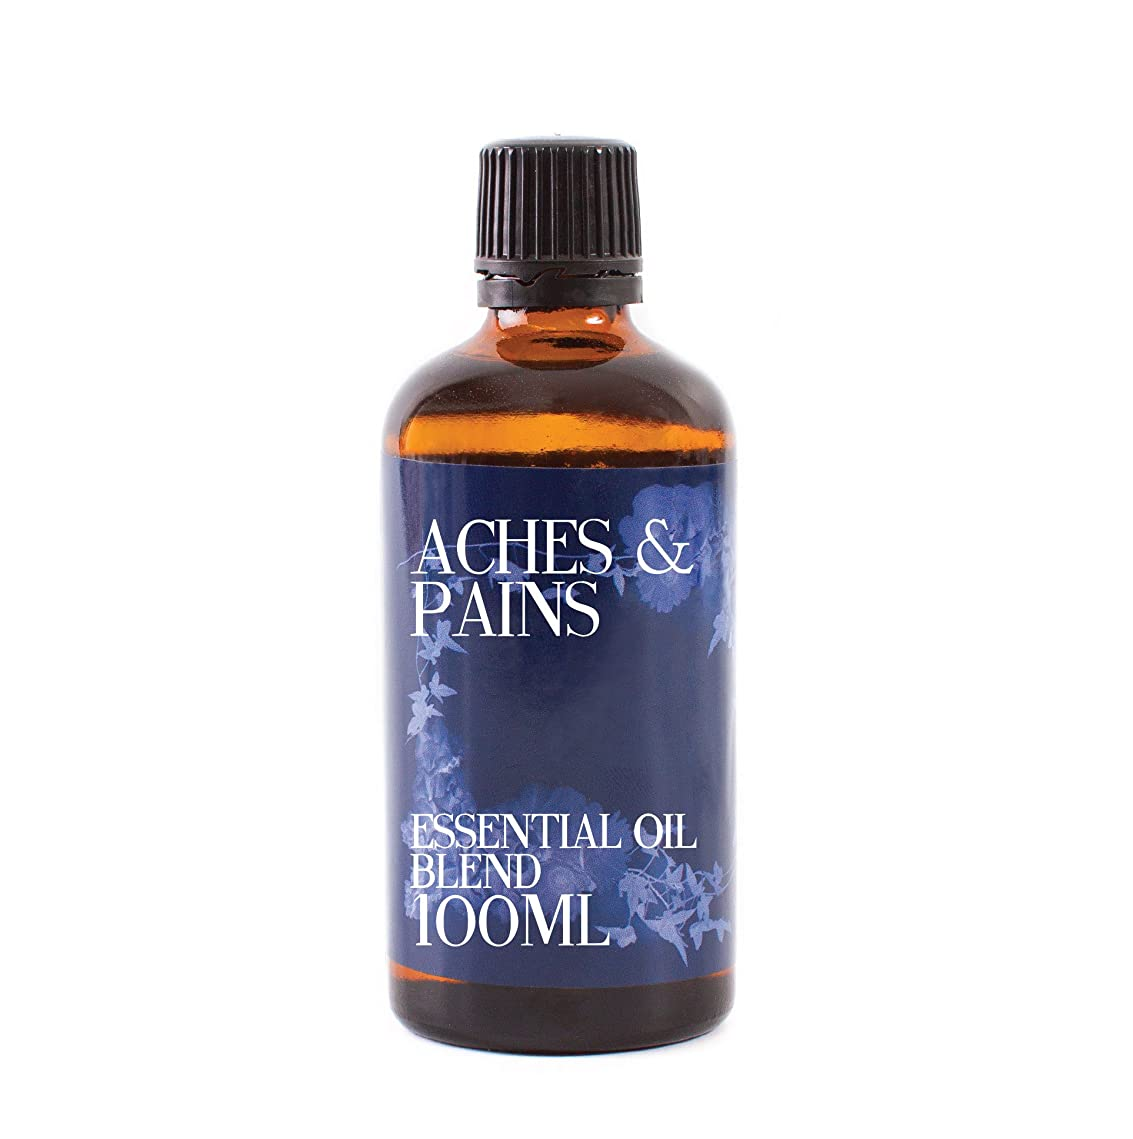 バウンス食品結婚式Mystic Moments | Aches and Pains Essential Oil Blend - 100ml - 100% Pure